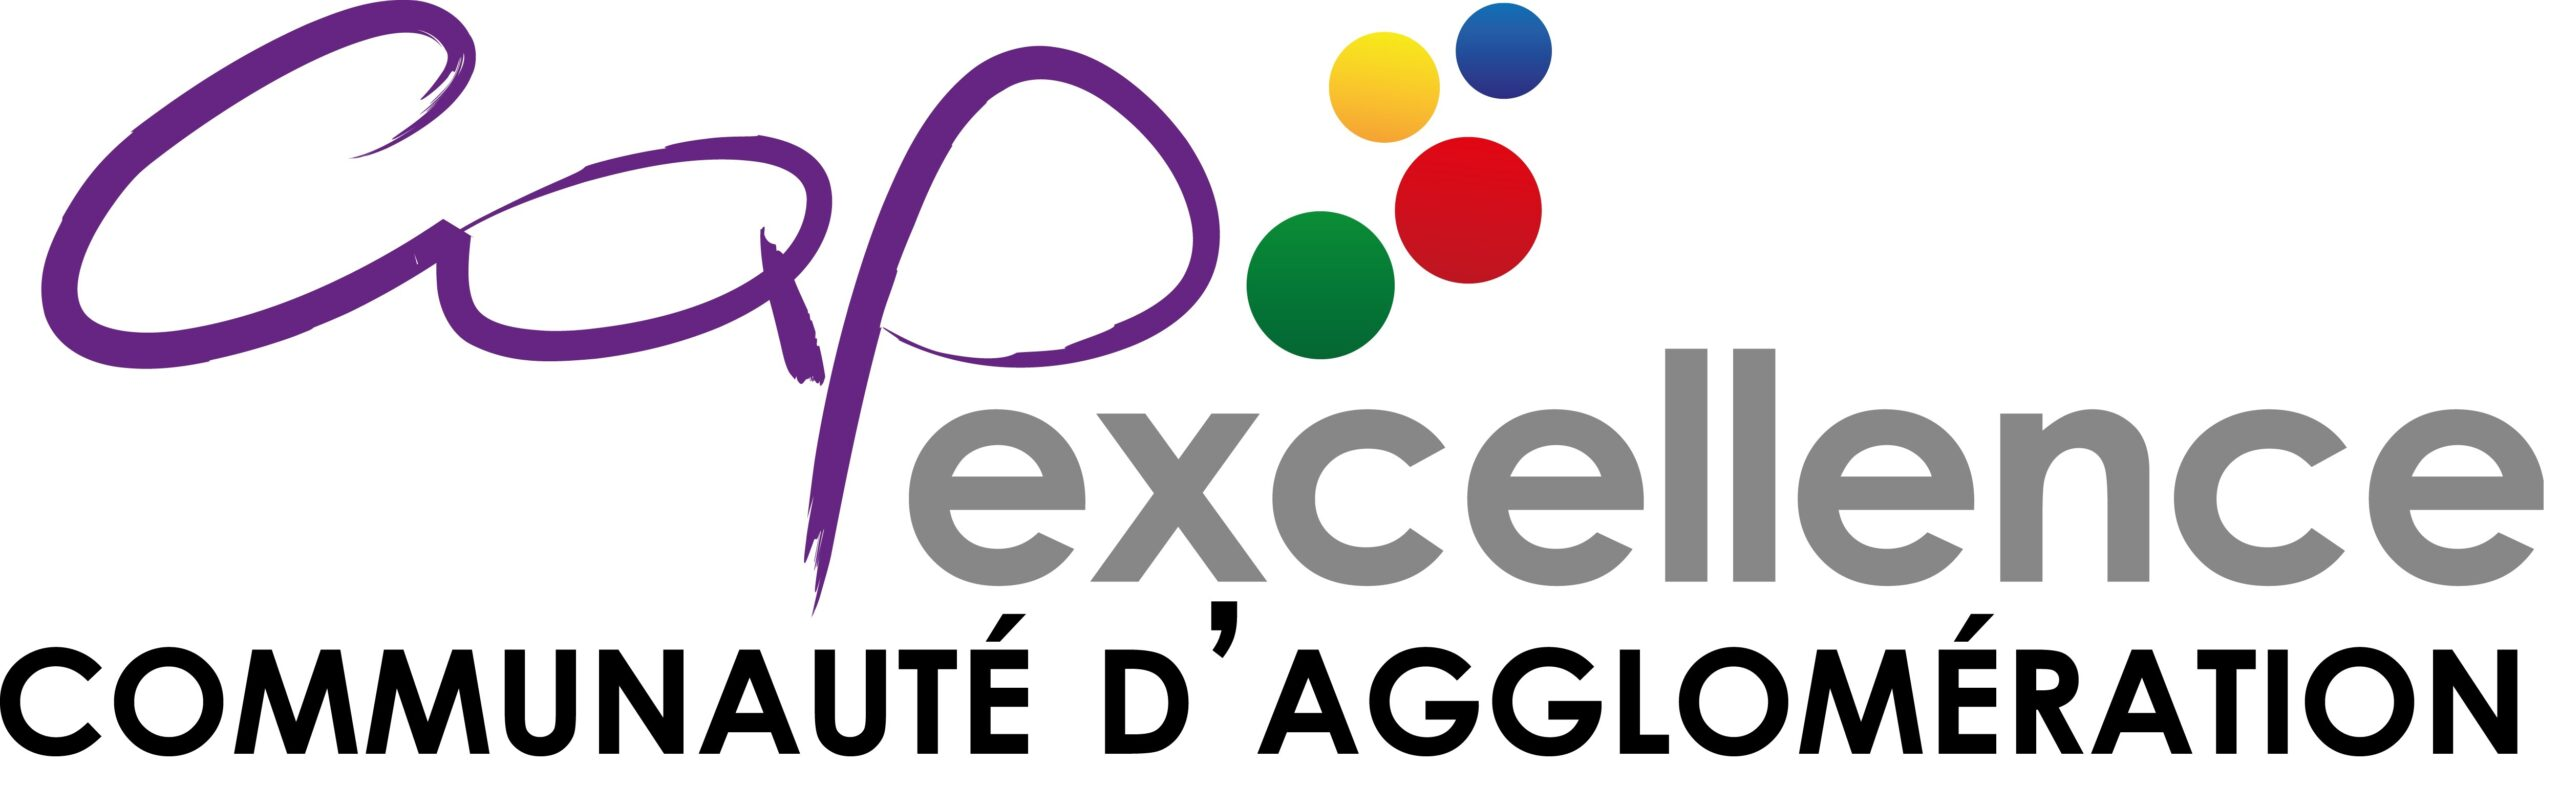 Logo_CapExcellence